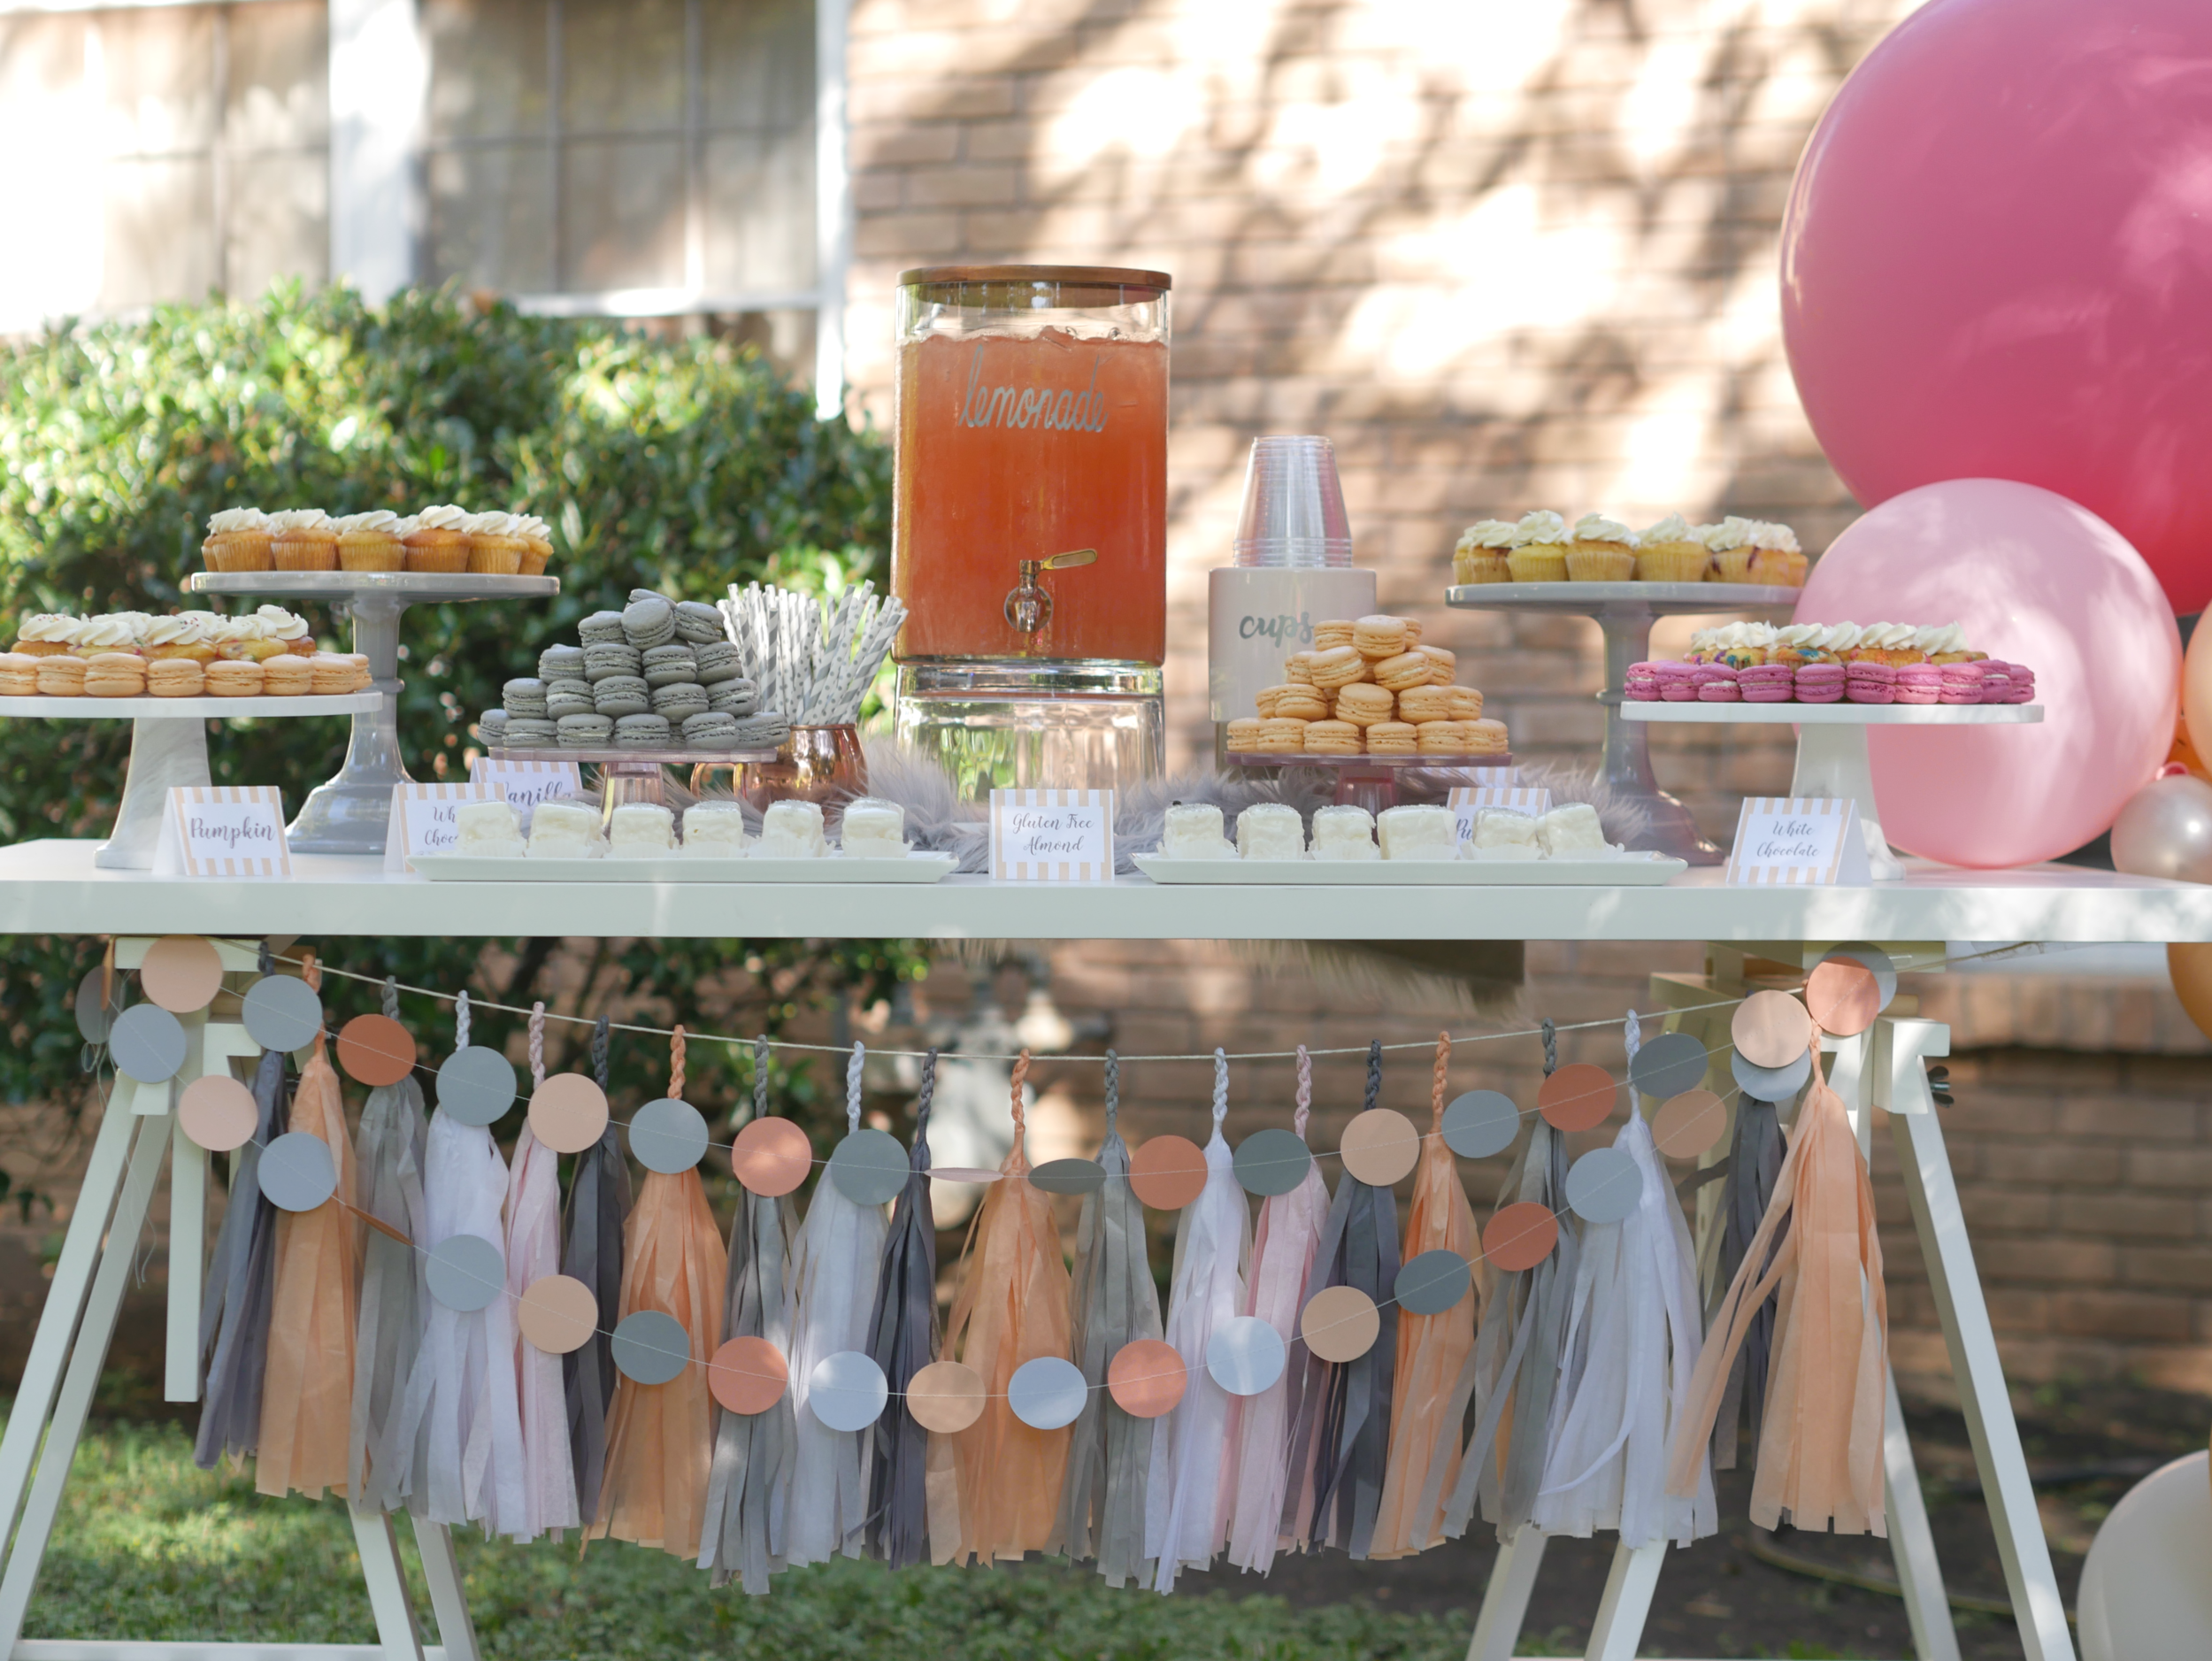 Gray and peach dessert table at an Austin area neighborhood block party with a balloon garland and a lemonade stand.